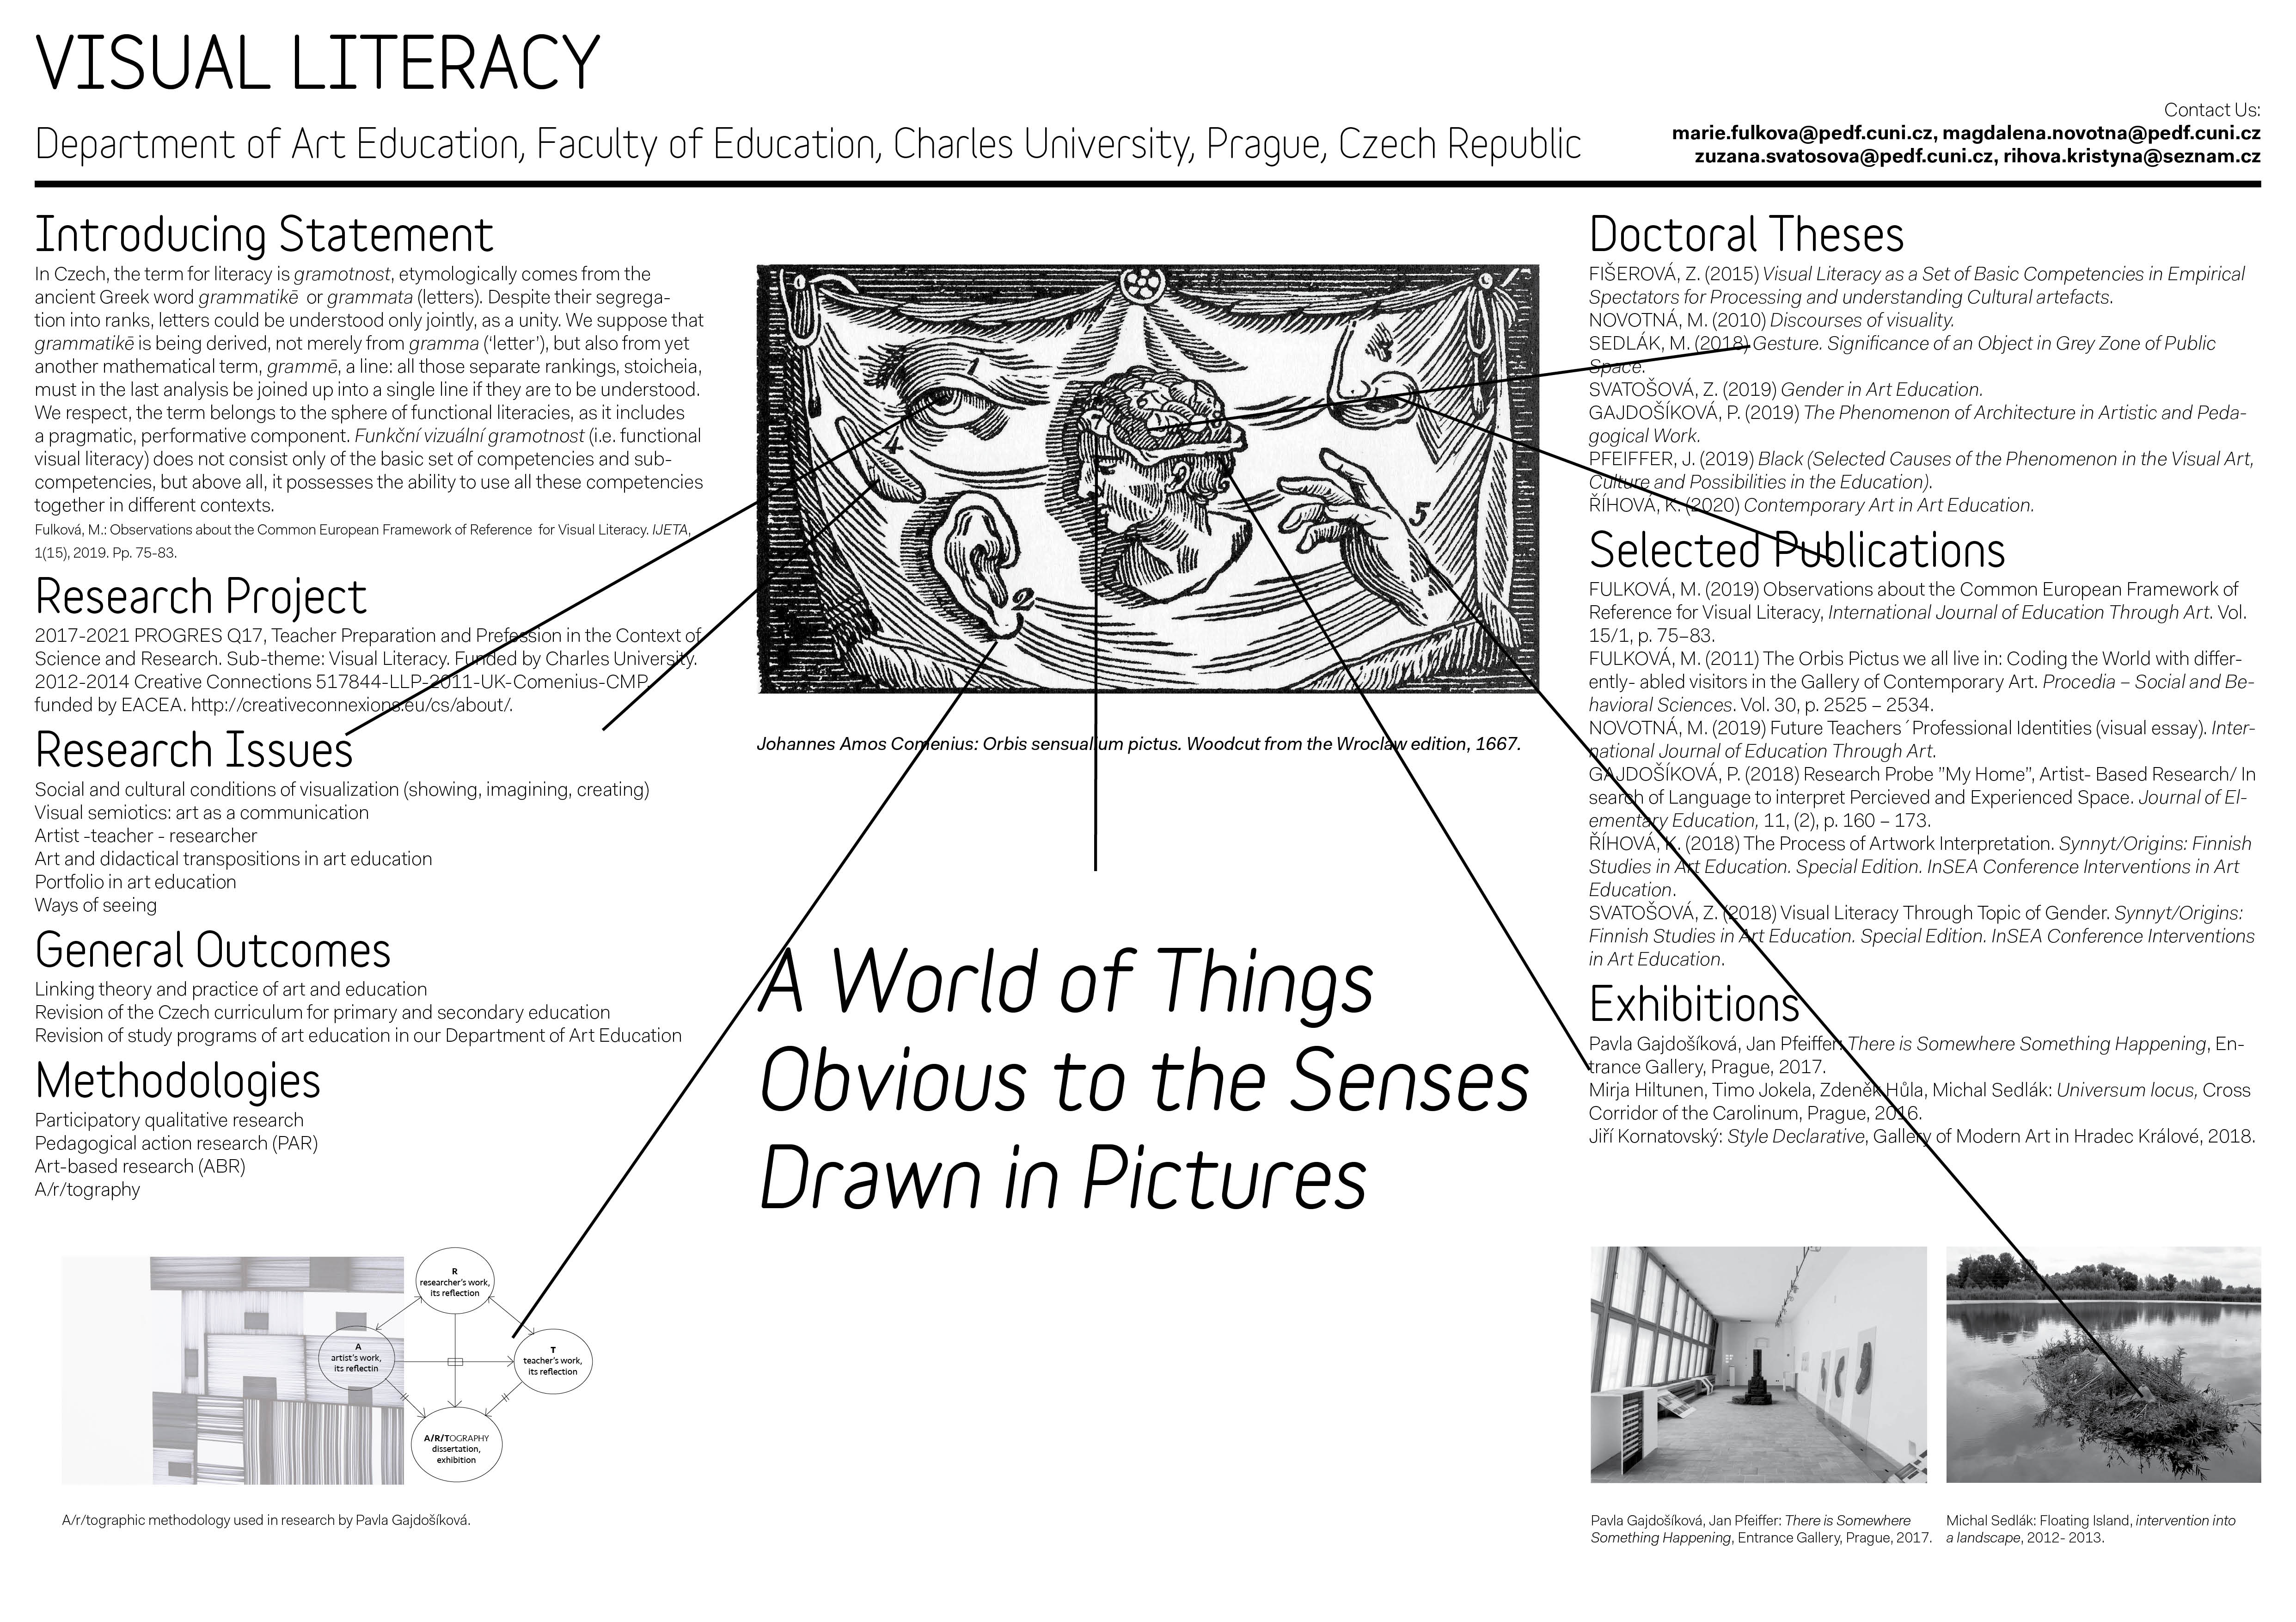 VISUAL LITERACY Department of Art Education, Faculty of